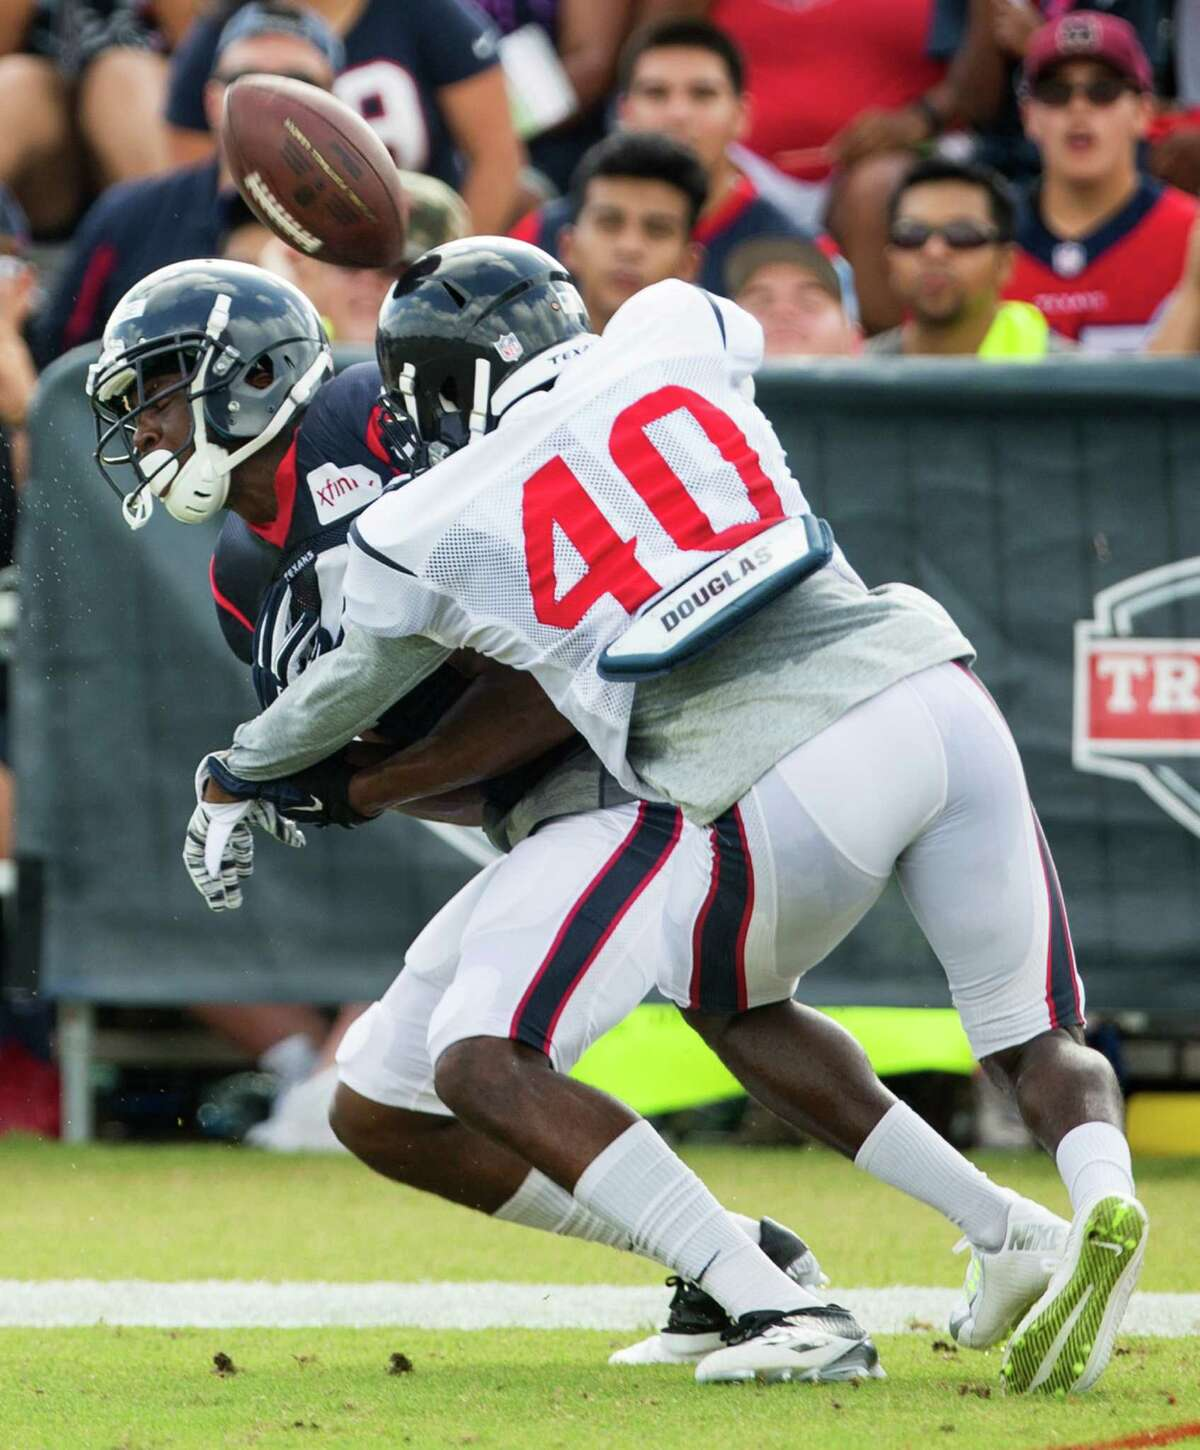 Houston Texans defensive back Duke Thomas (40) breaks up a pass intended for wide receiver Quenton Bundrage during Texans training camp at Houston Methodist Training Center on Saturday, Aug. 6, 2016, in Houston.